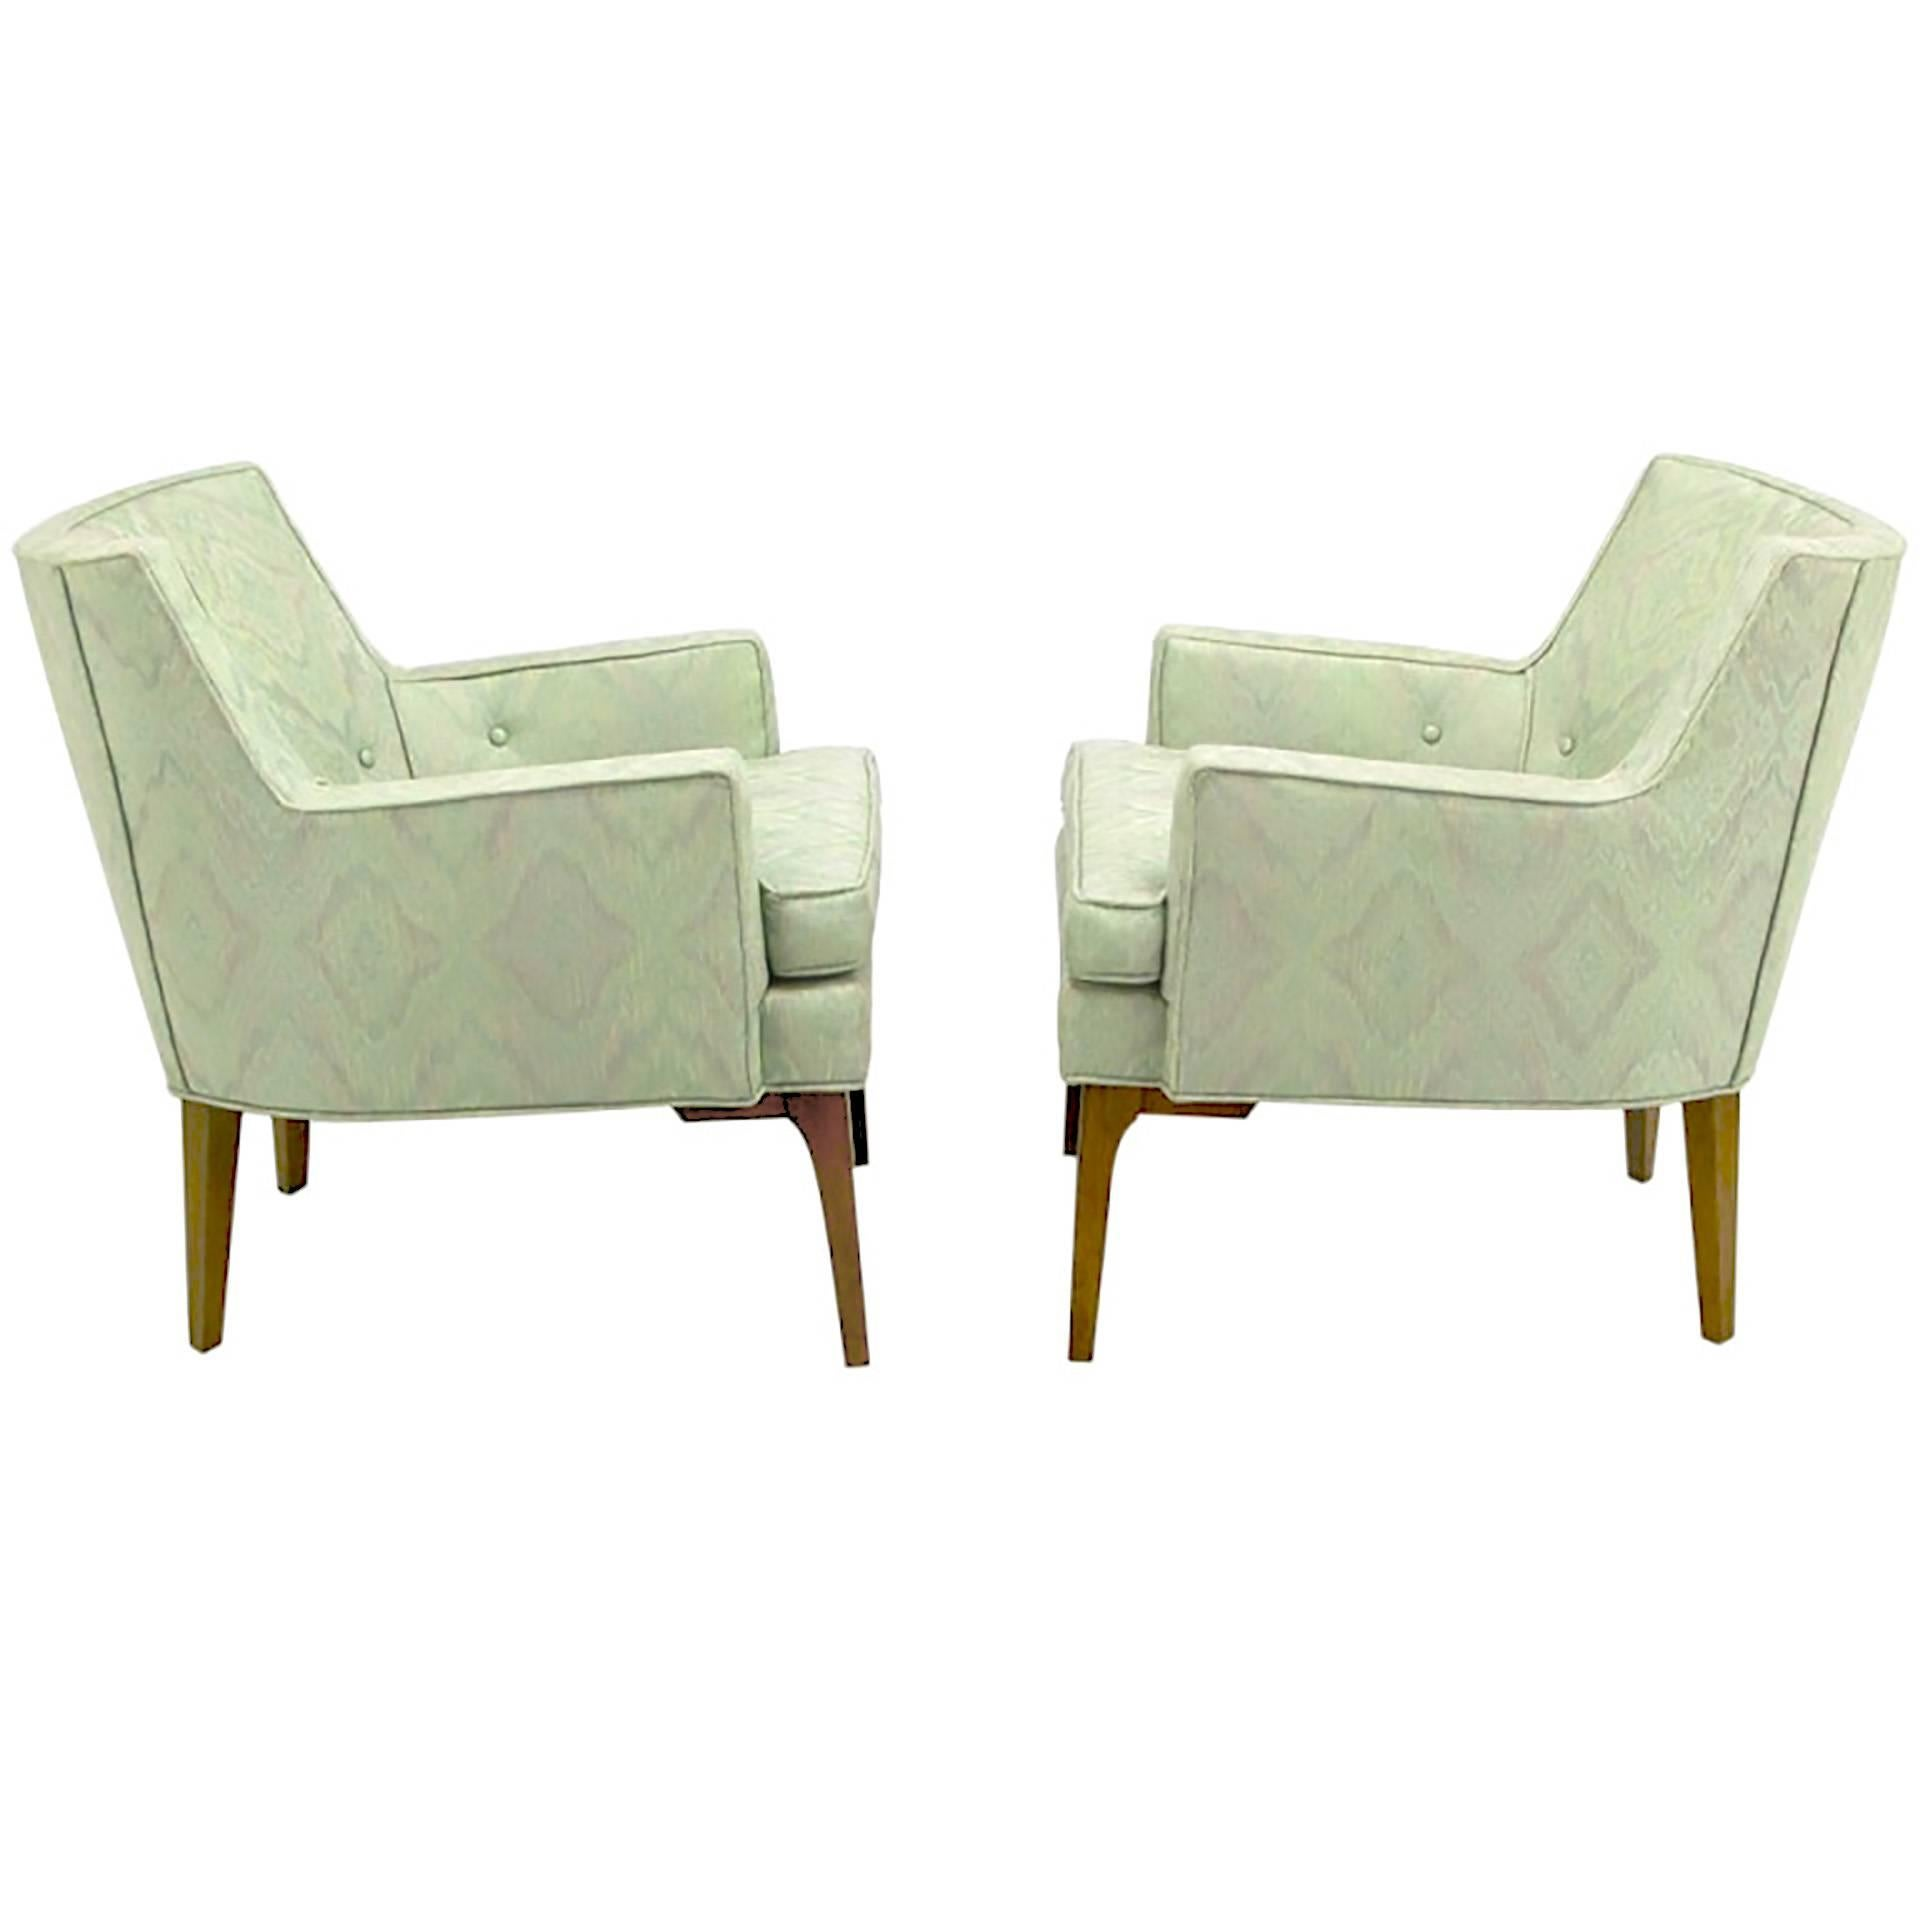 Pair of Classic Barrel-Back Club Chairs in Ikat Upholstery